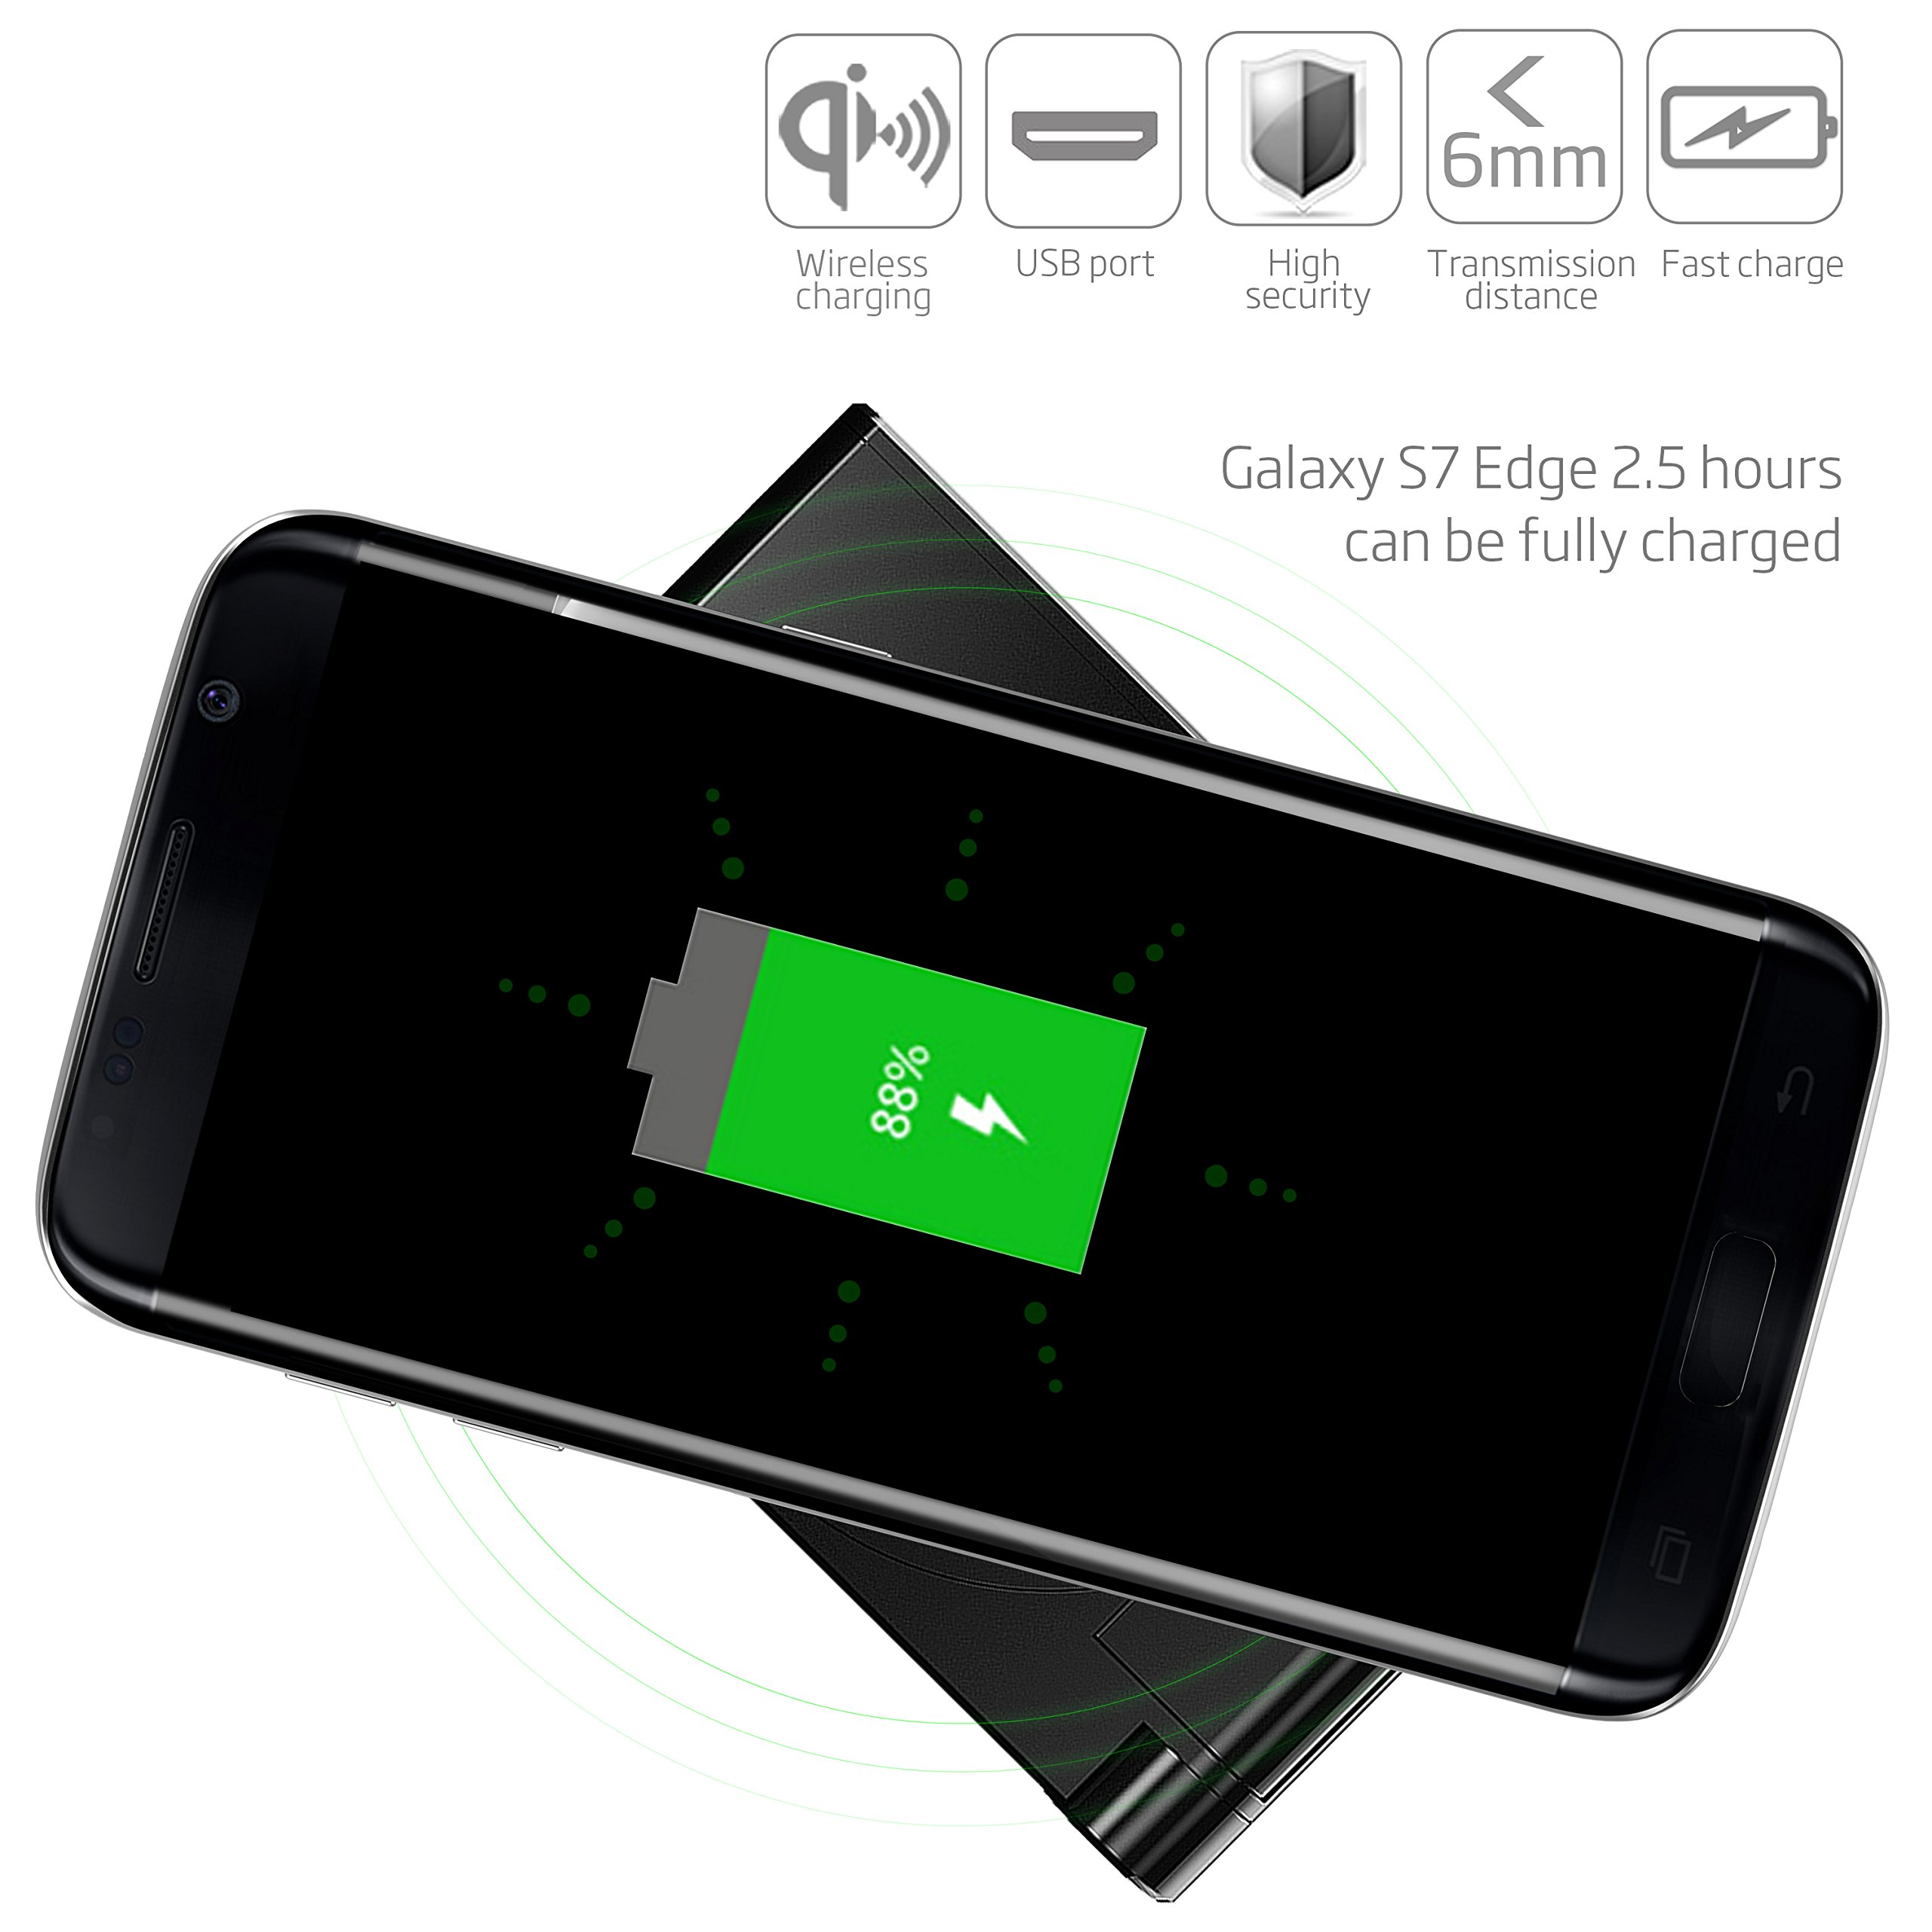 Wireless Charger-LOVPHONE QI Wireless Charging Stand Pad Quick Charge for Samsung Galaxy S7, S7 Edge, Galaxy S6, ,S6 Edge ,S6 Edge Plus,Note 5, (AC Adapter Not Included) (Black)